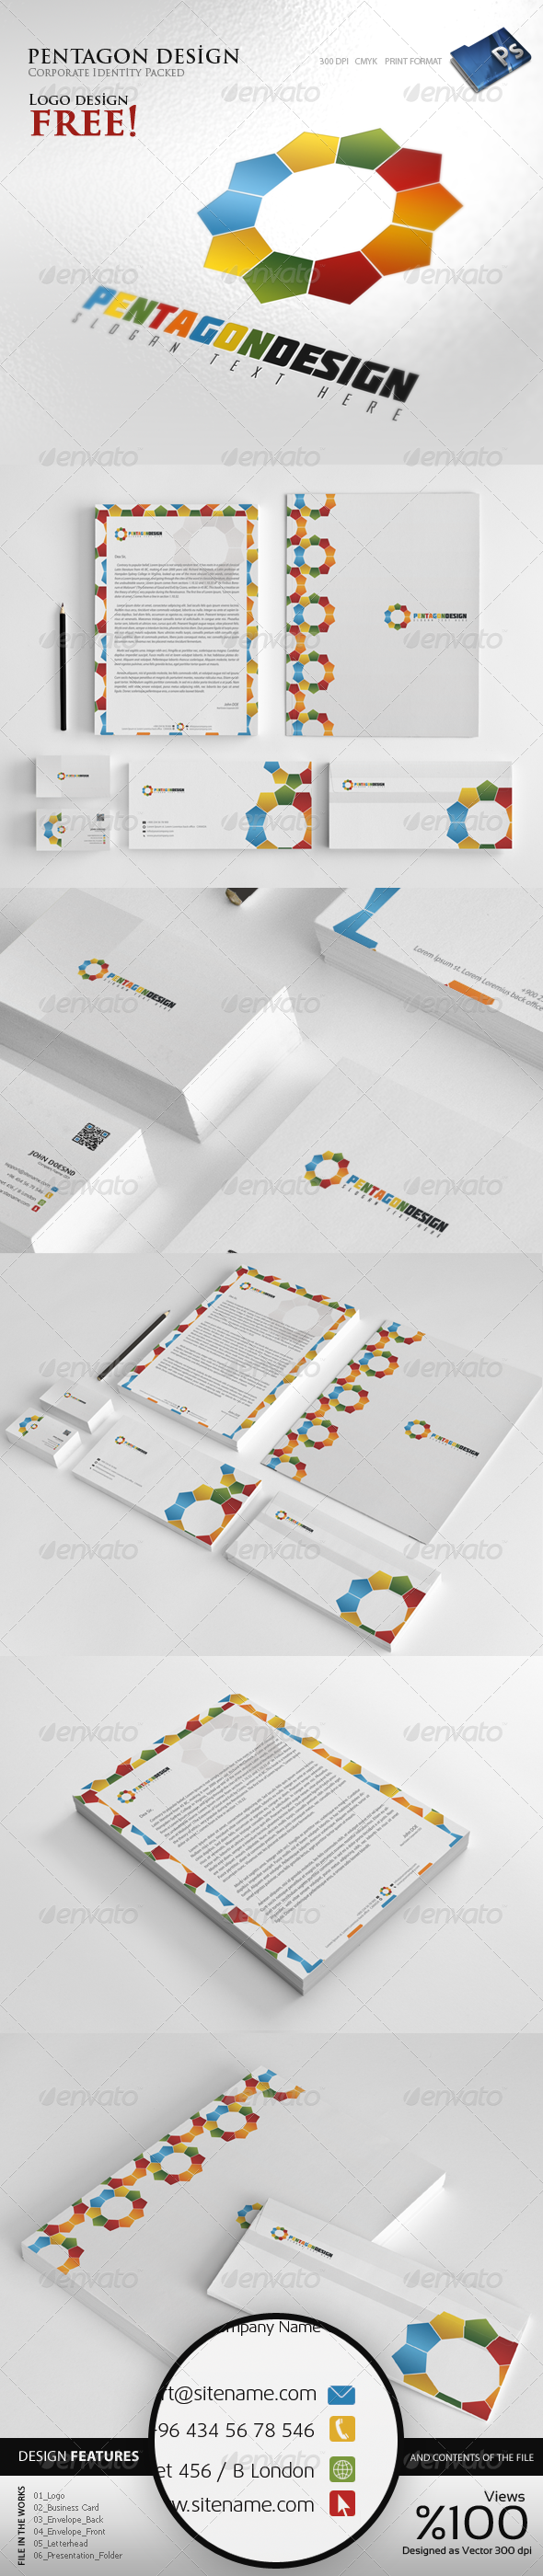 Pentagon Design - Corporate identity - Stationery Print Templates